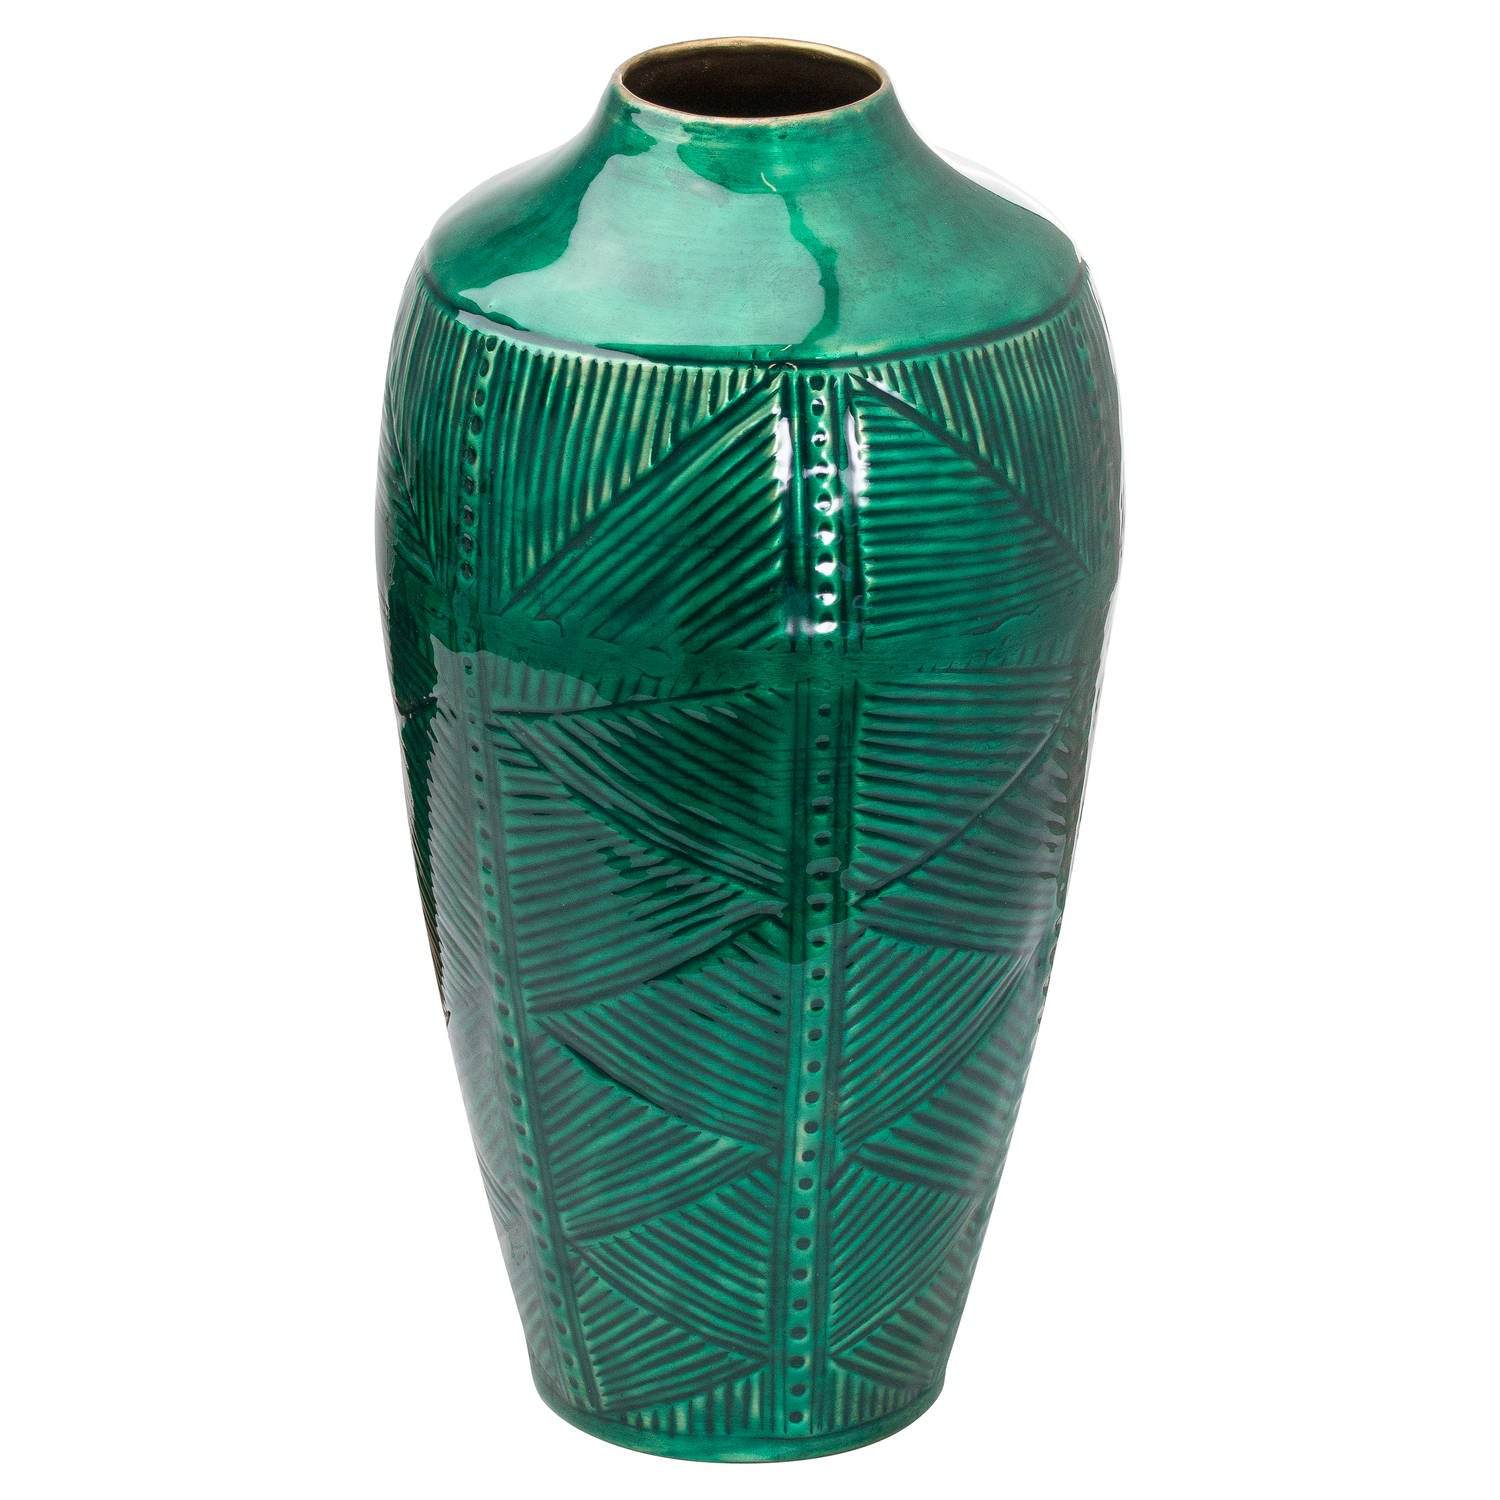 Aztec Collection Brass Embossed Ceramic Dipped Vase